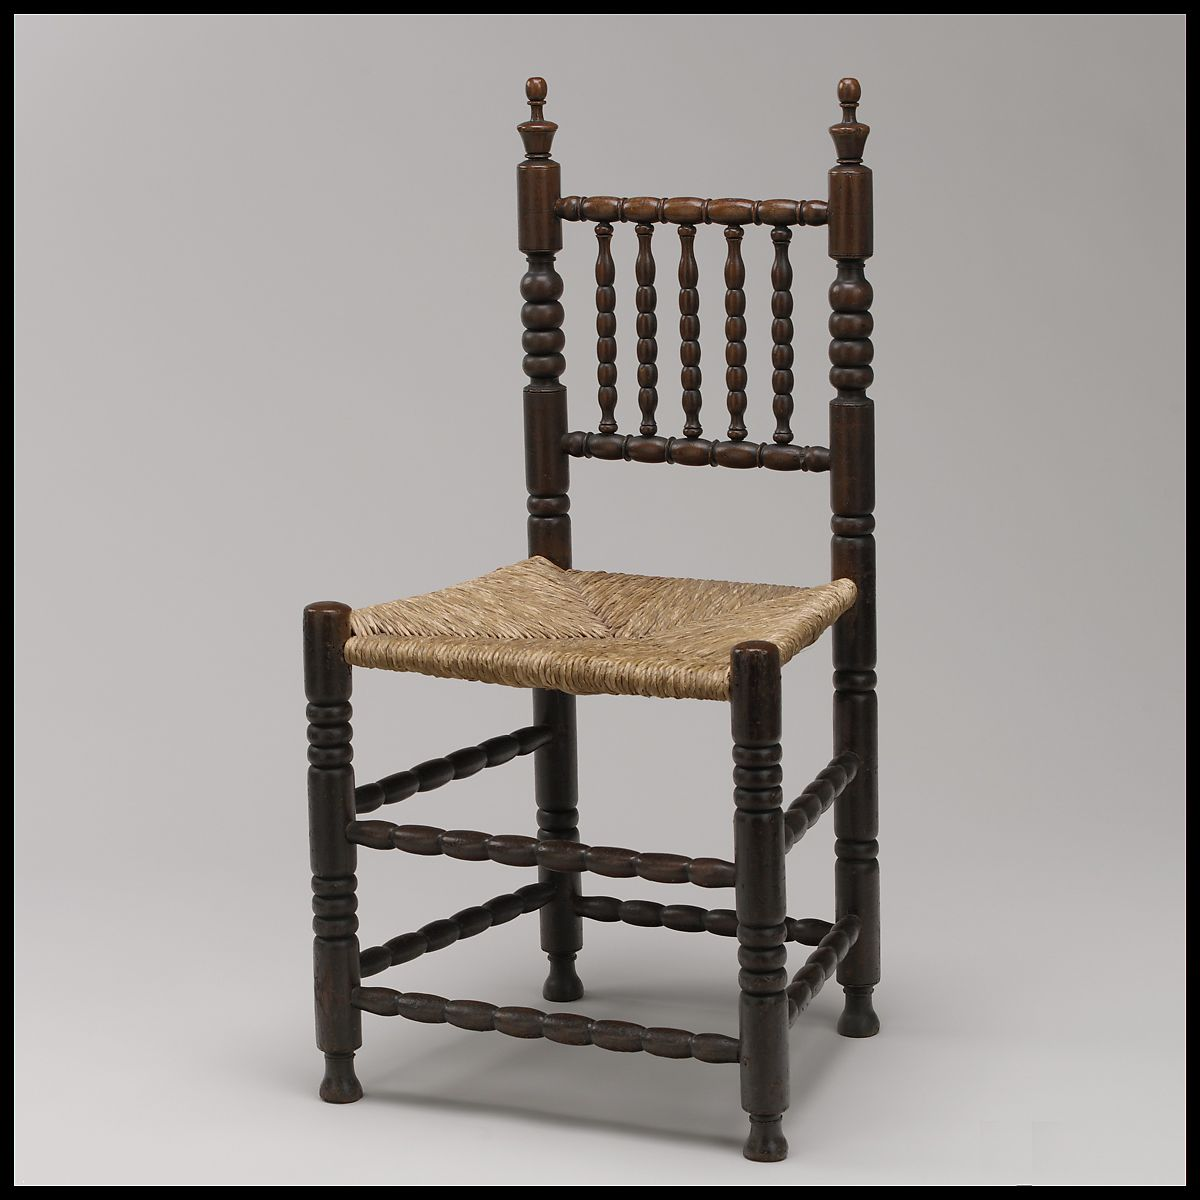 Spindle-back chair  American  The Met